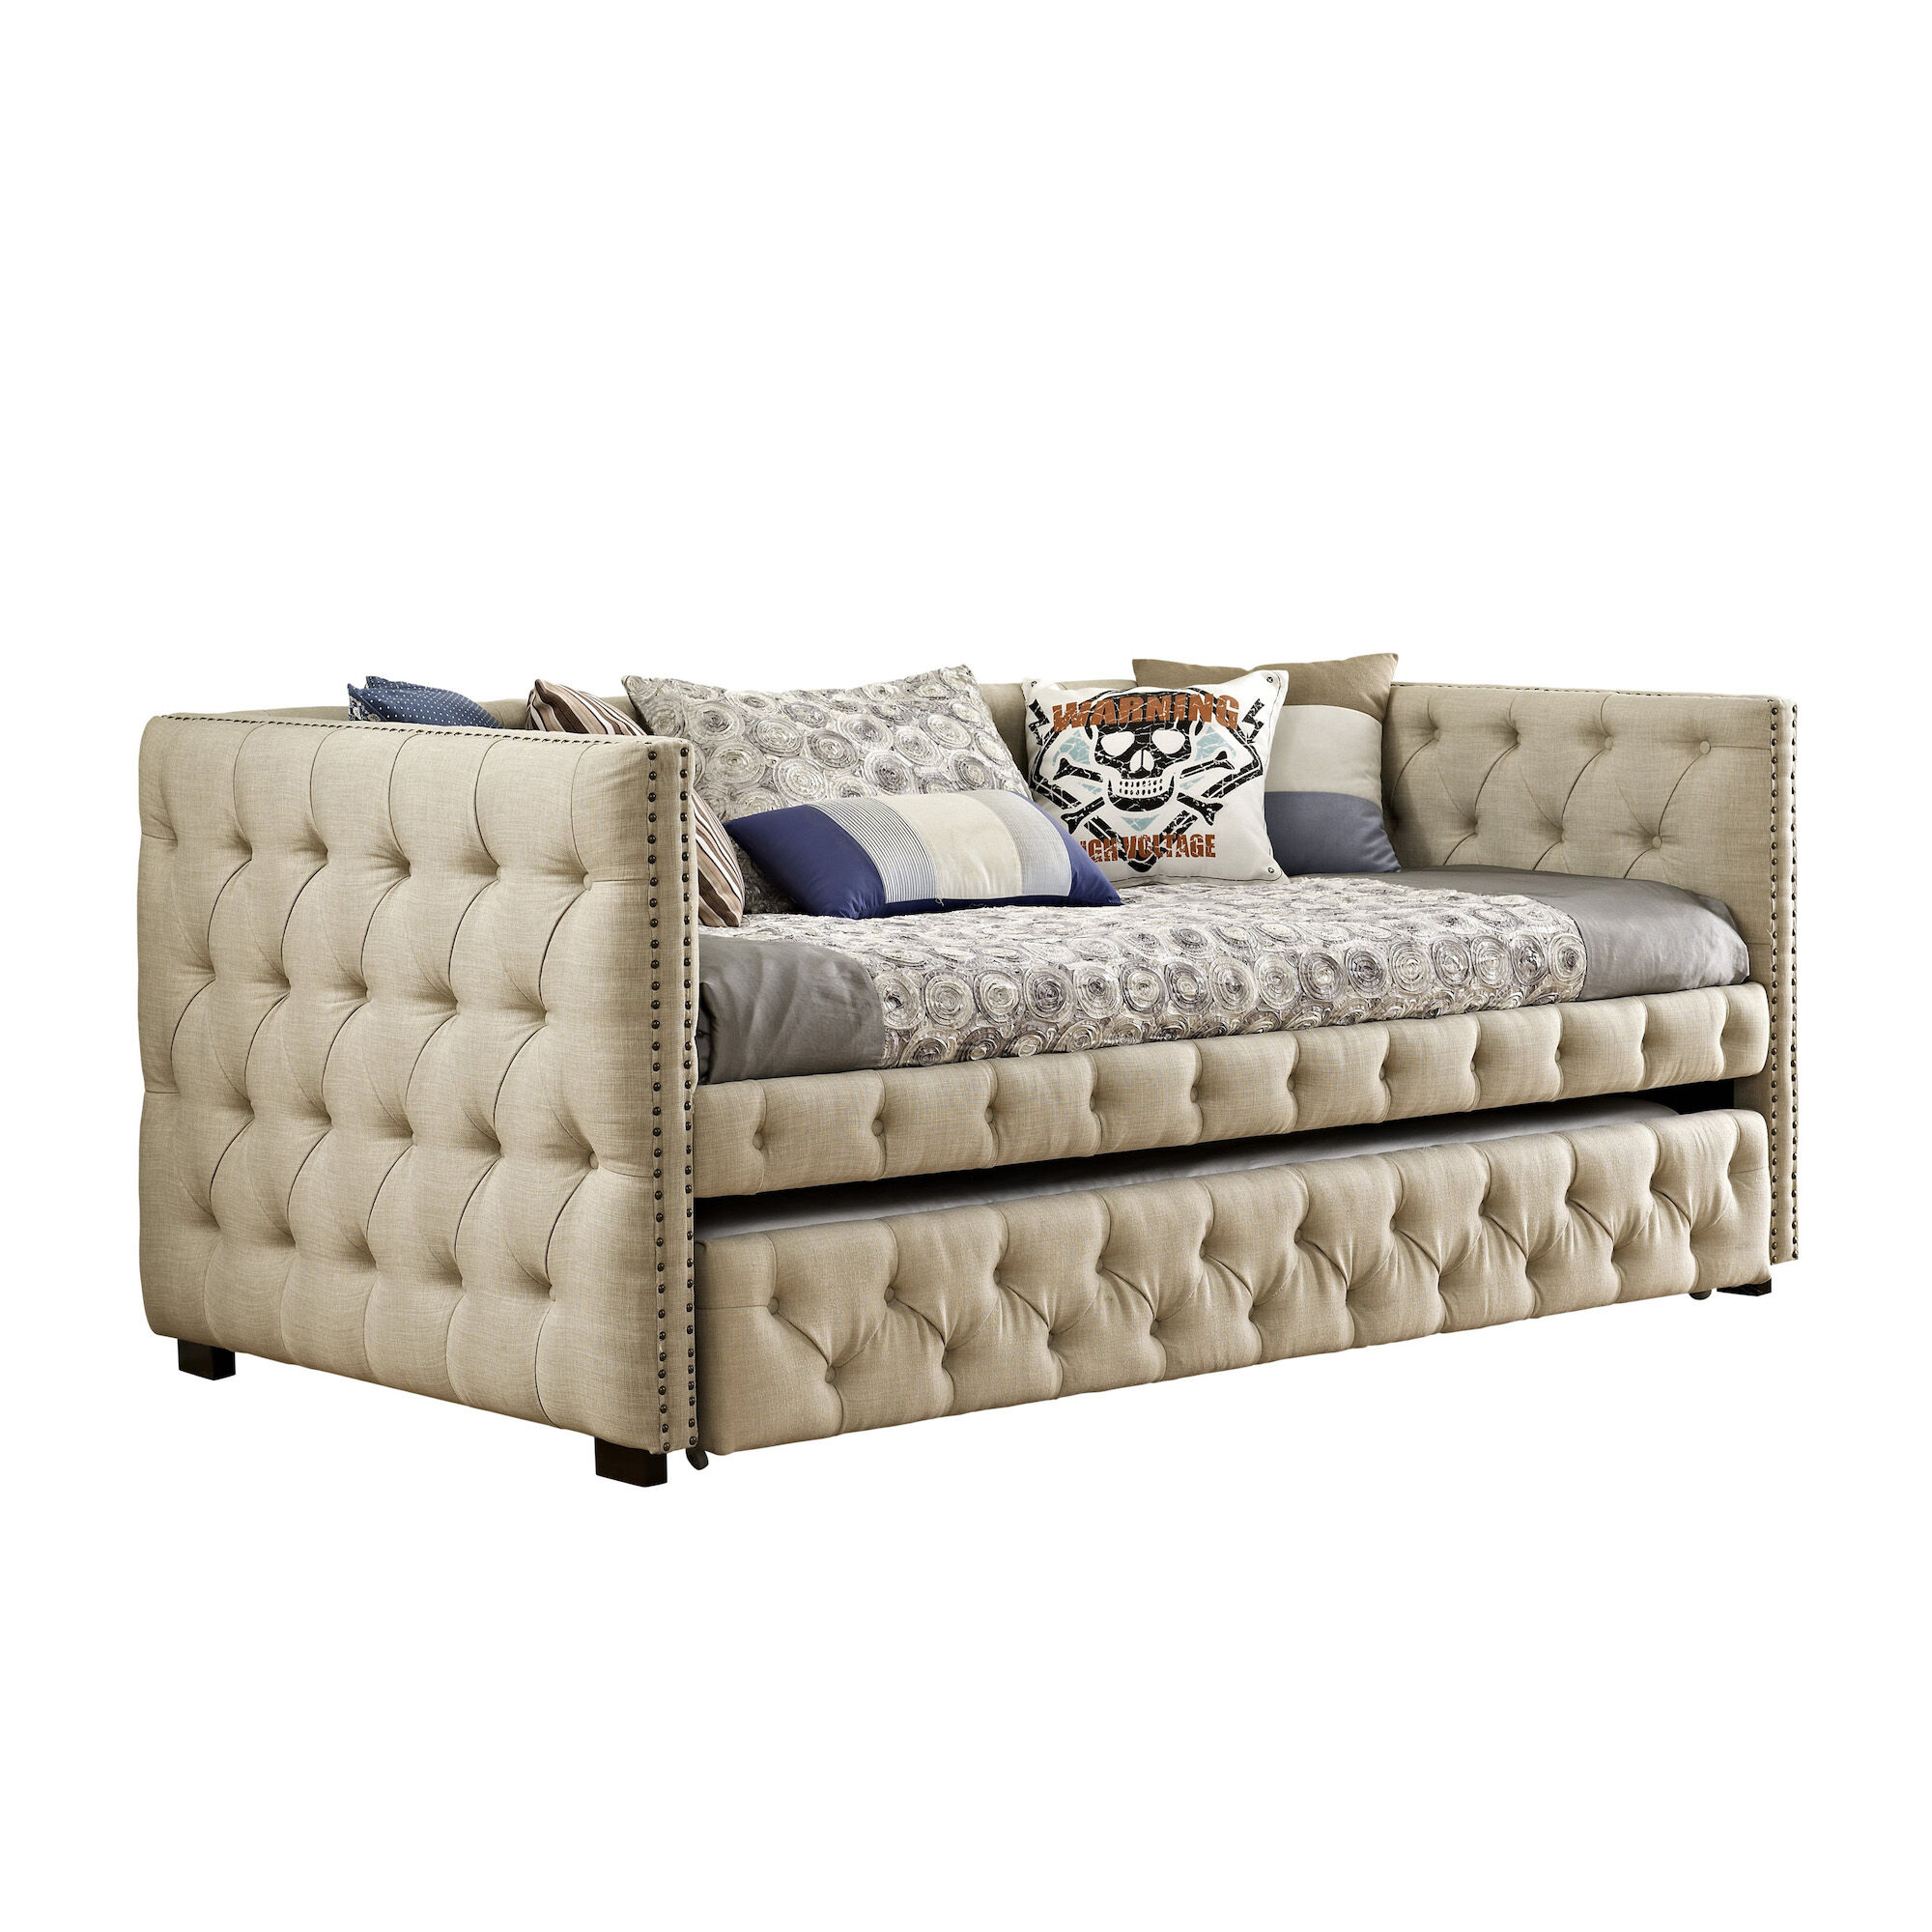 Janell Daybed   Natural